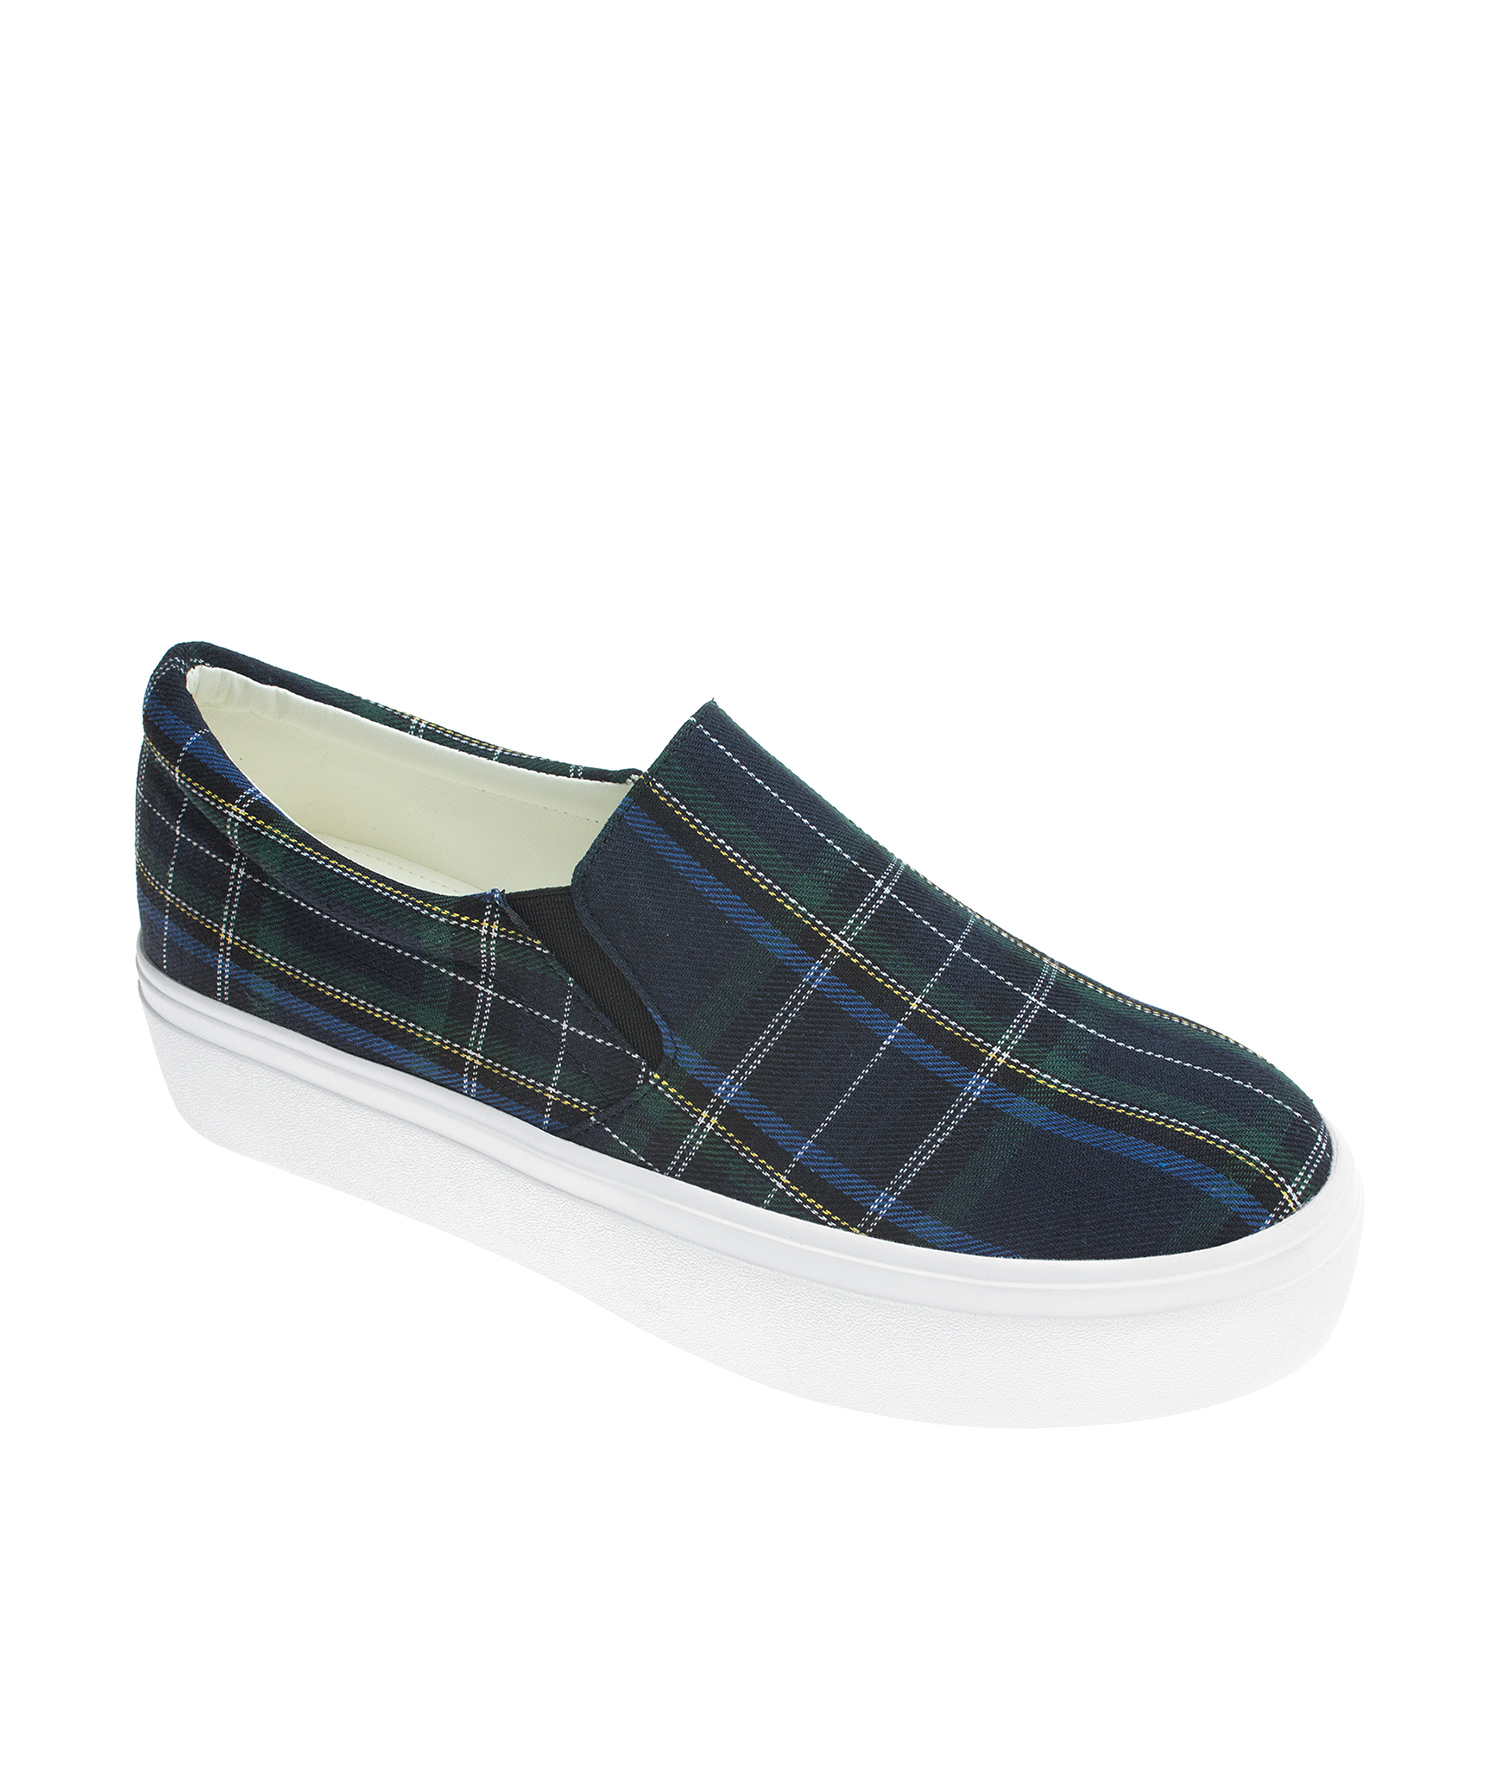 AnnaKastle Womens Tartan Plaid Slip On Sneakers Navy